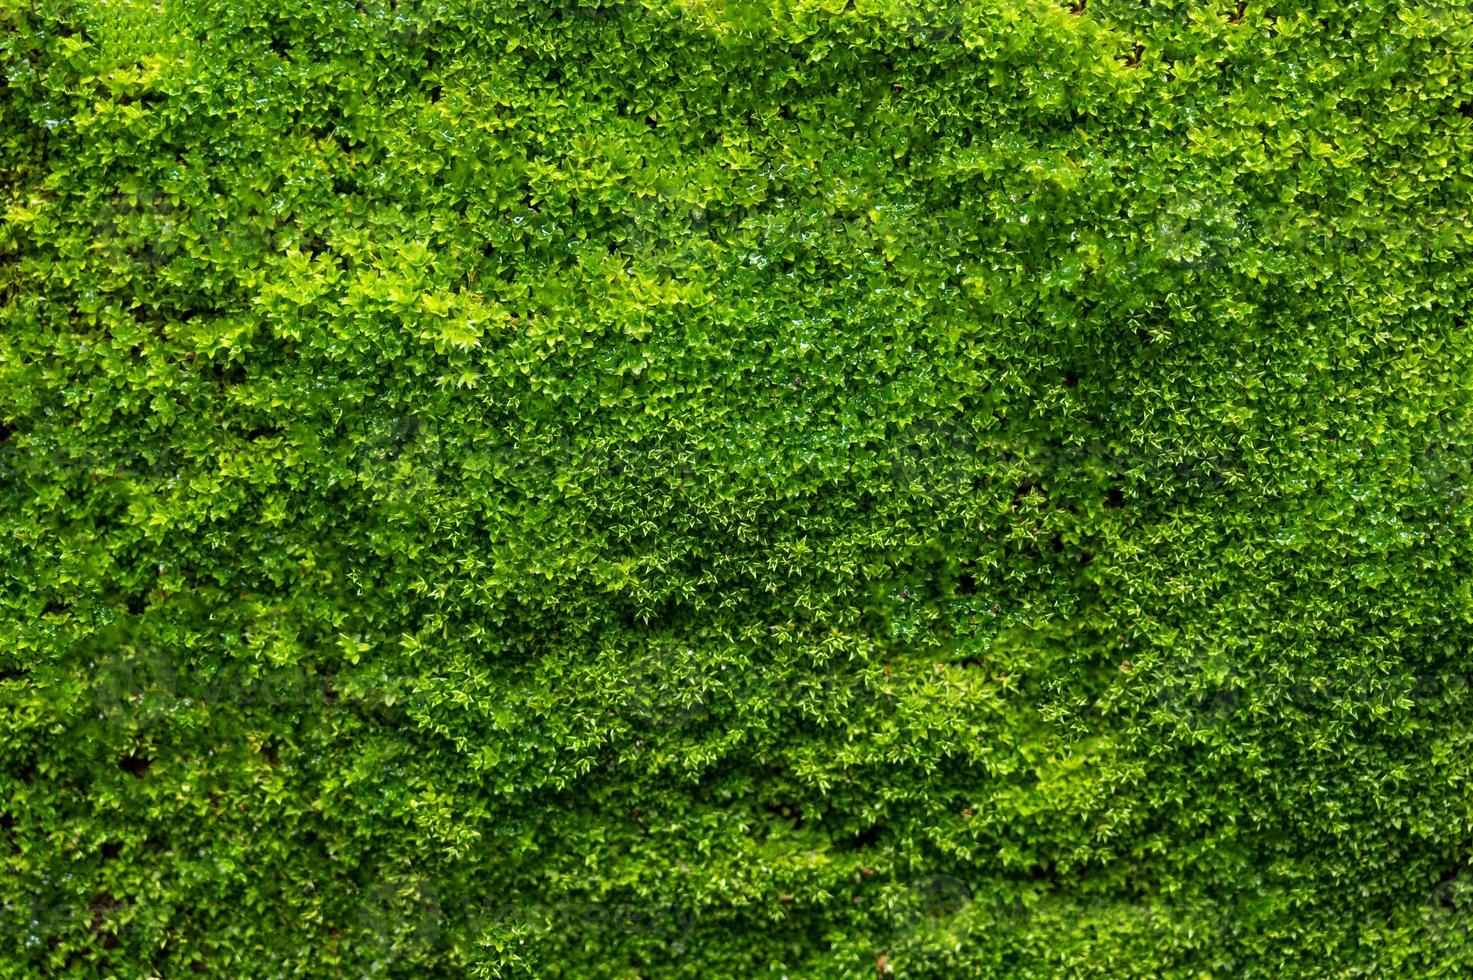 Green Moss background, mossy texture photo